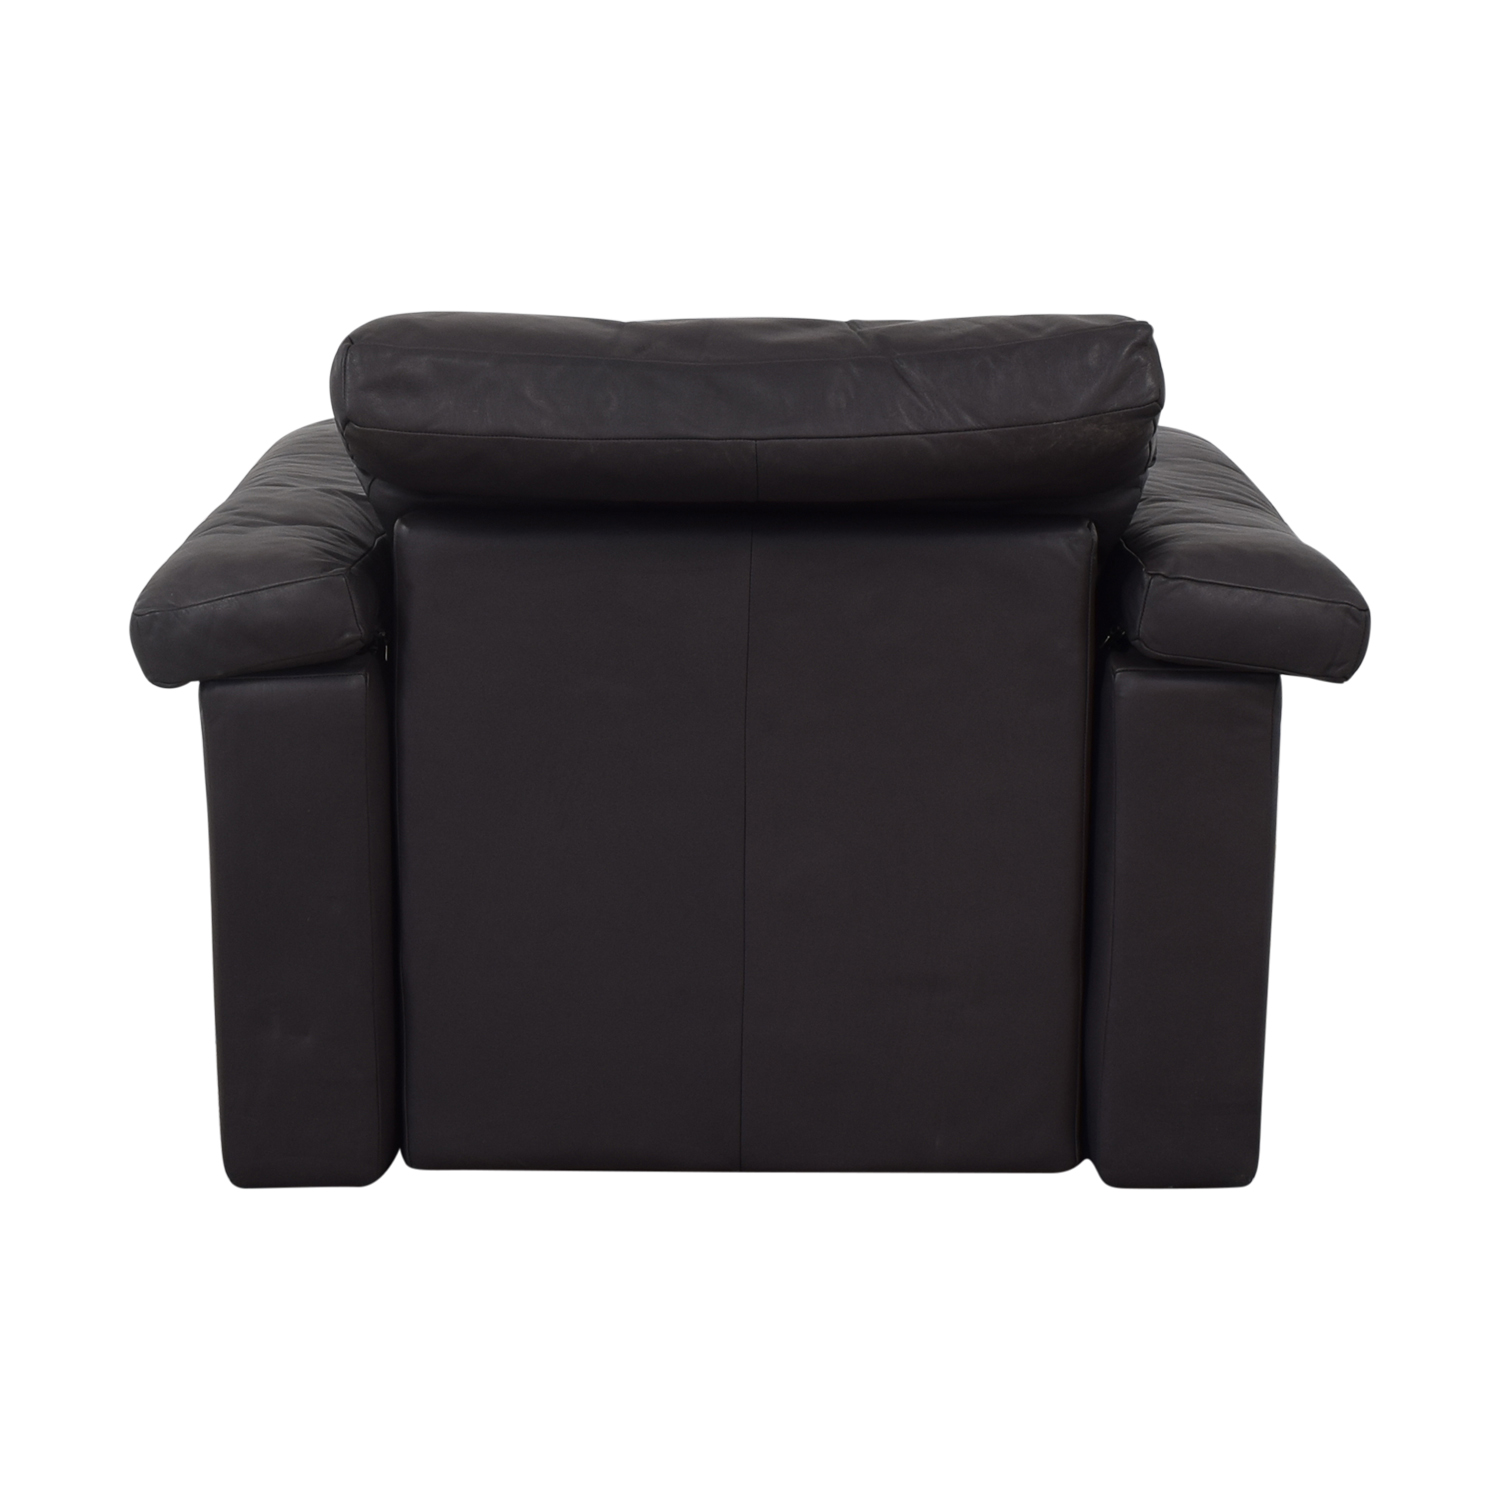 Rolf Benz Rolf Benz Armchair and Ottoman Set used